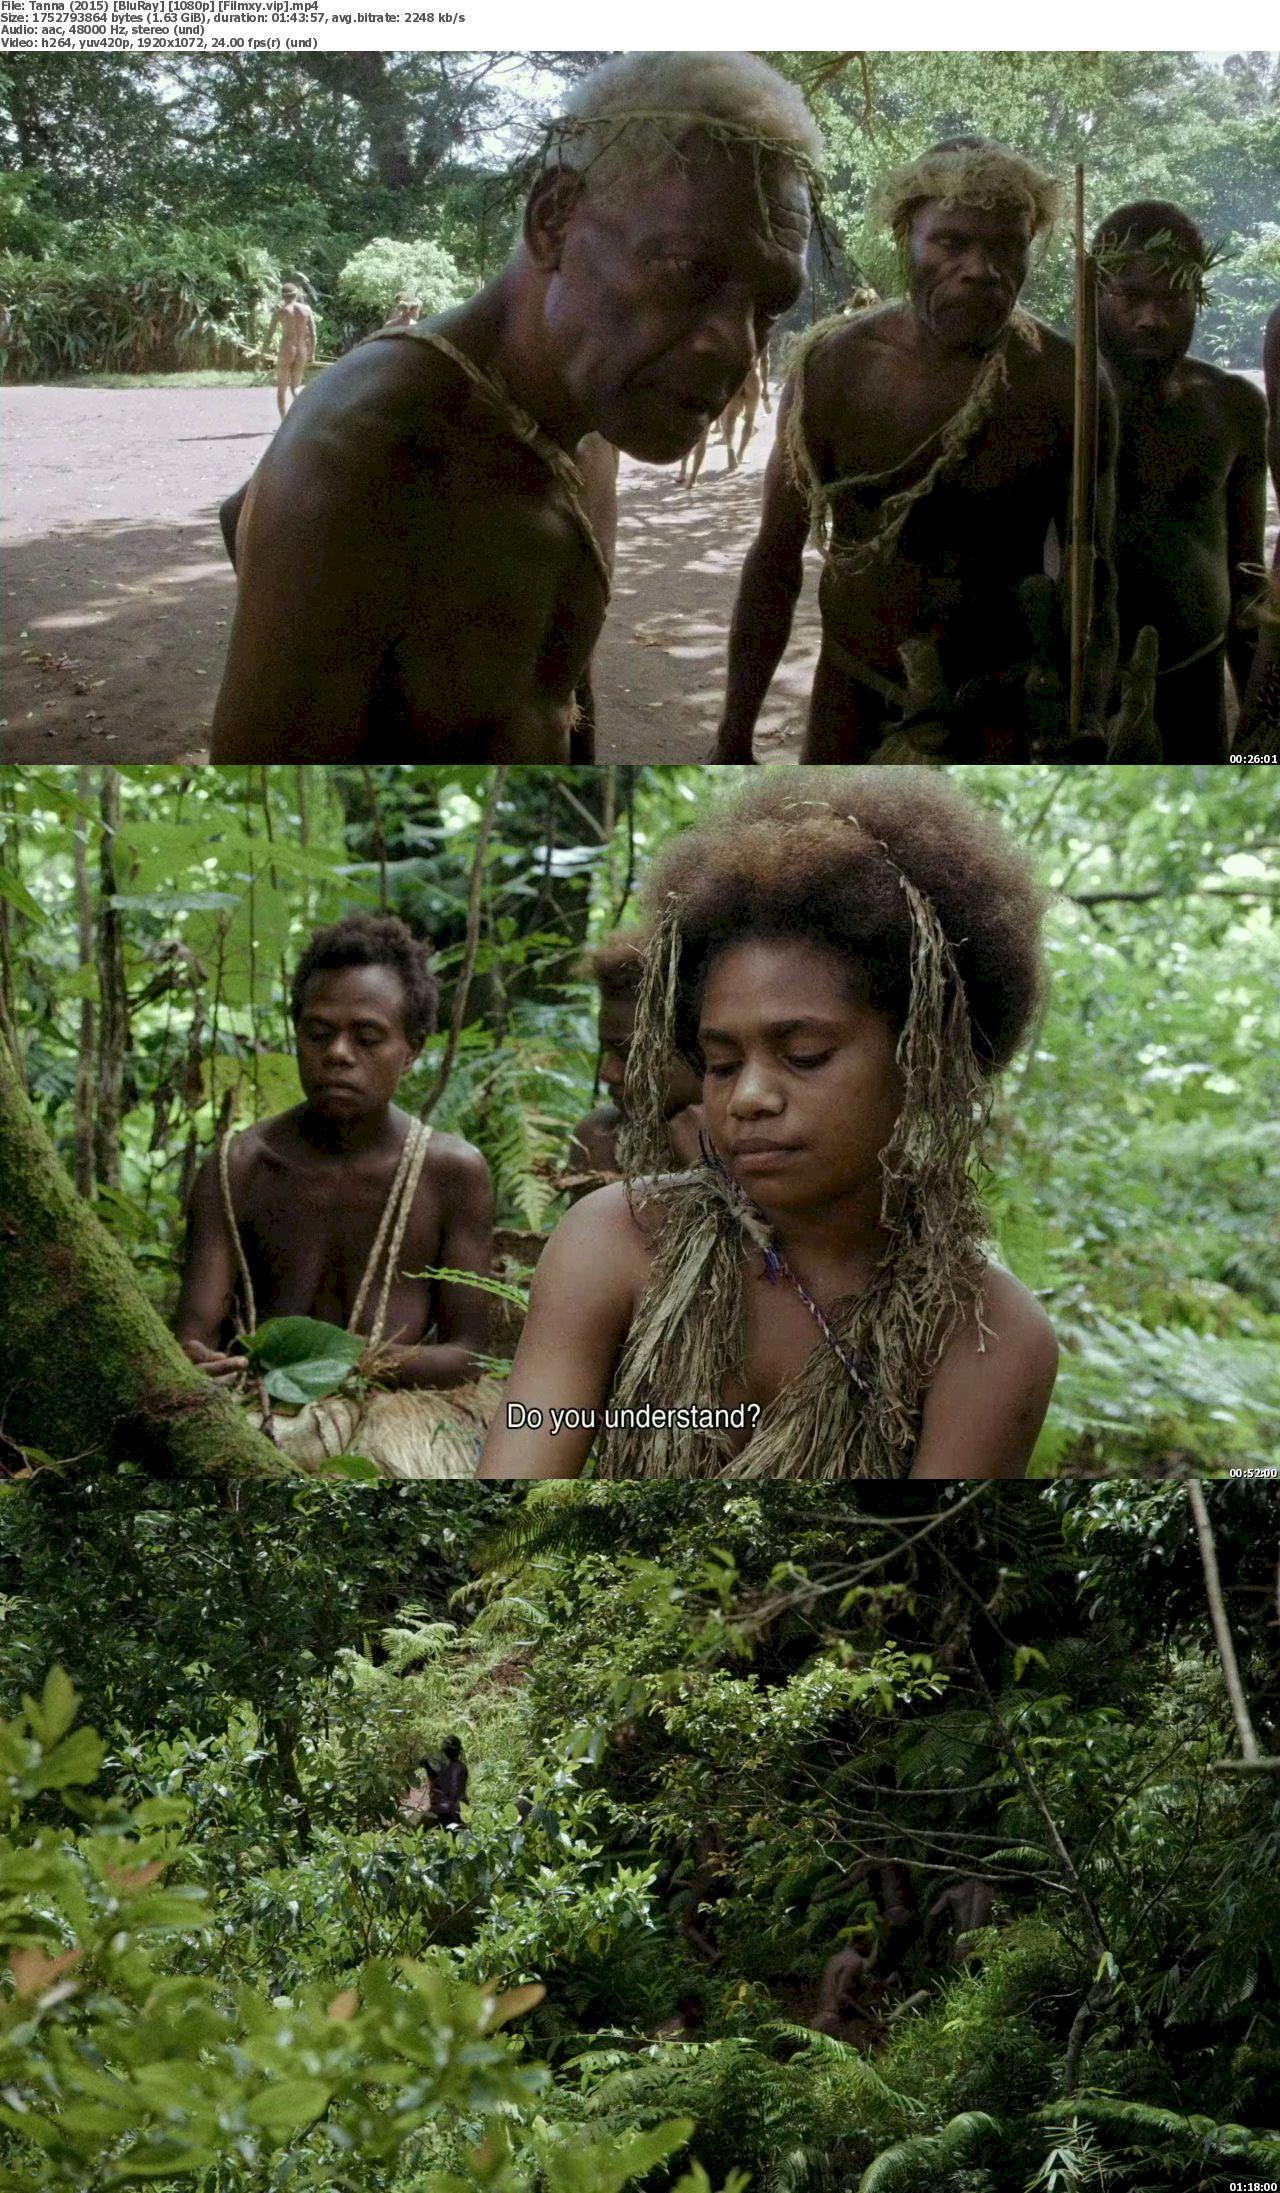 Tanna (2015) [720p & 1080p] Bluray Free Movie Watch Online & Download 1080p Screenshot